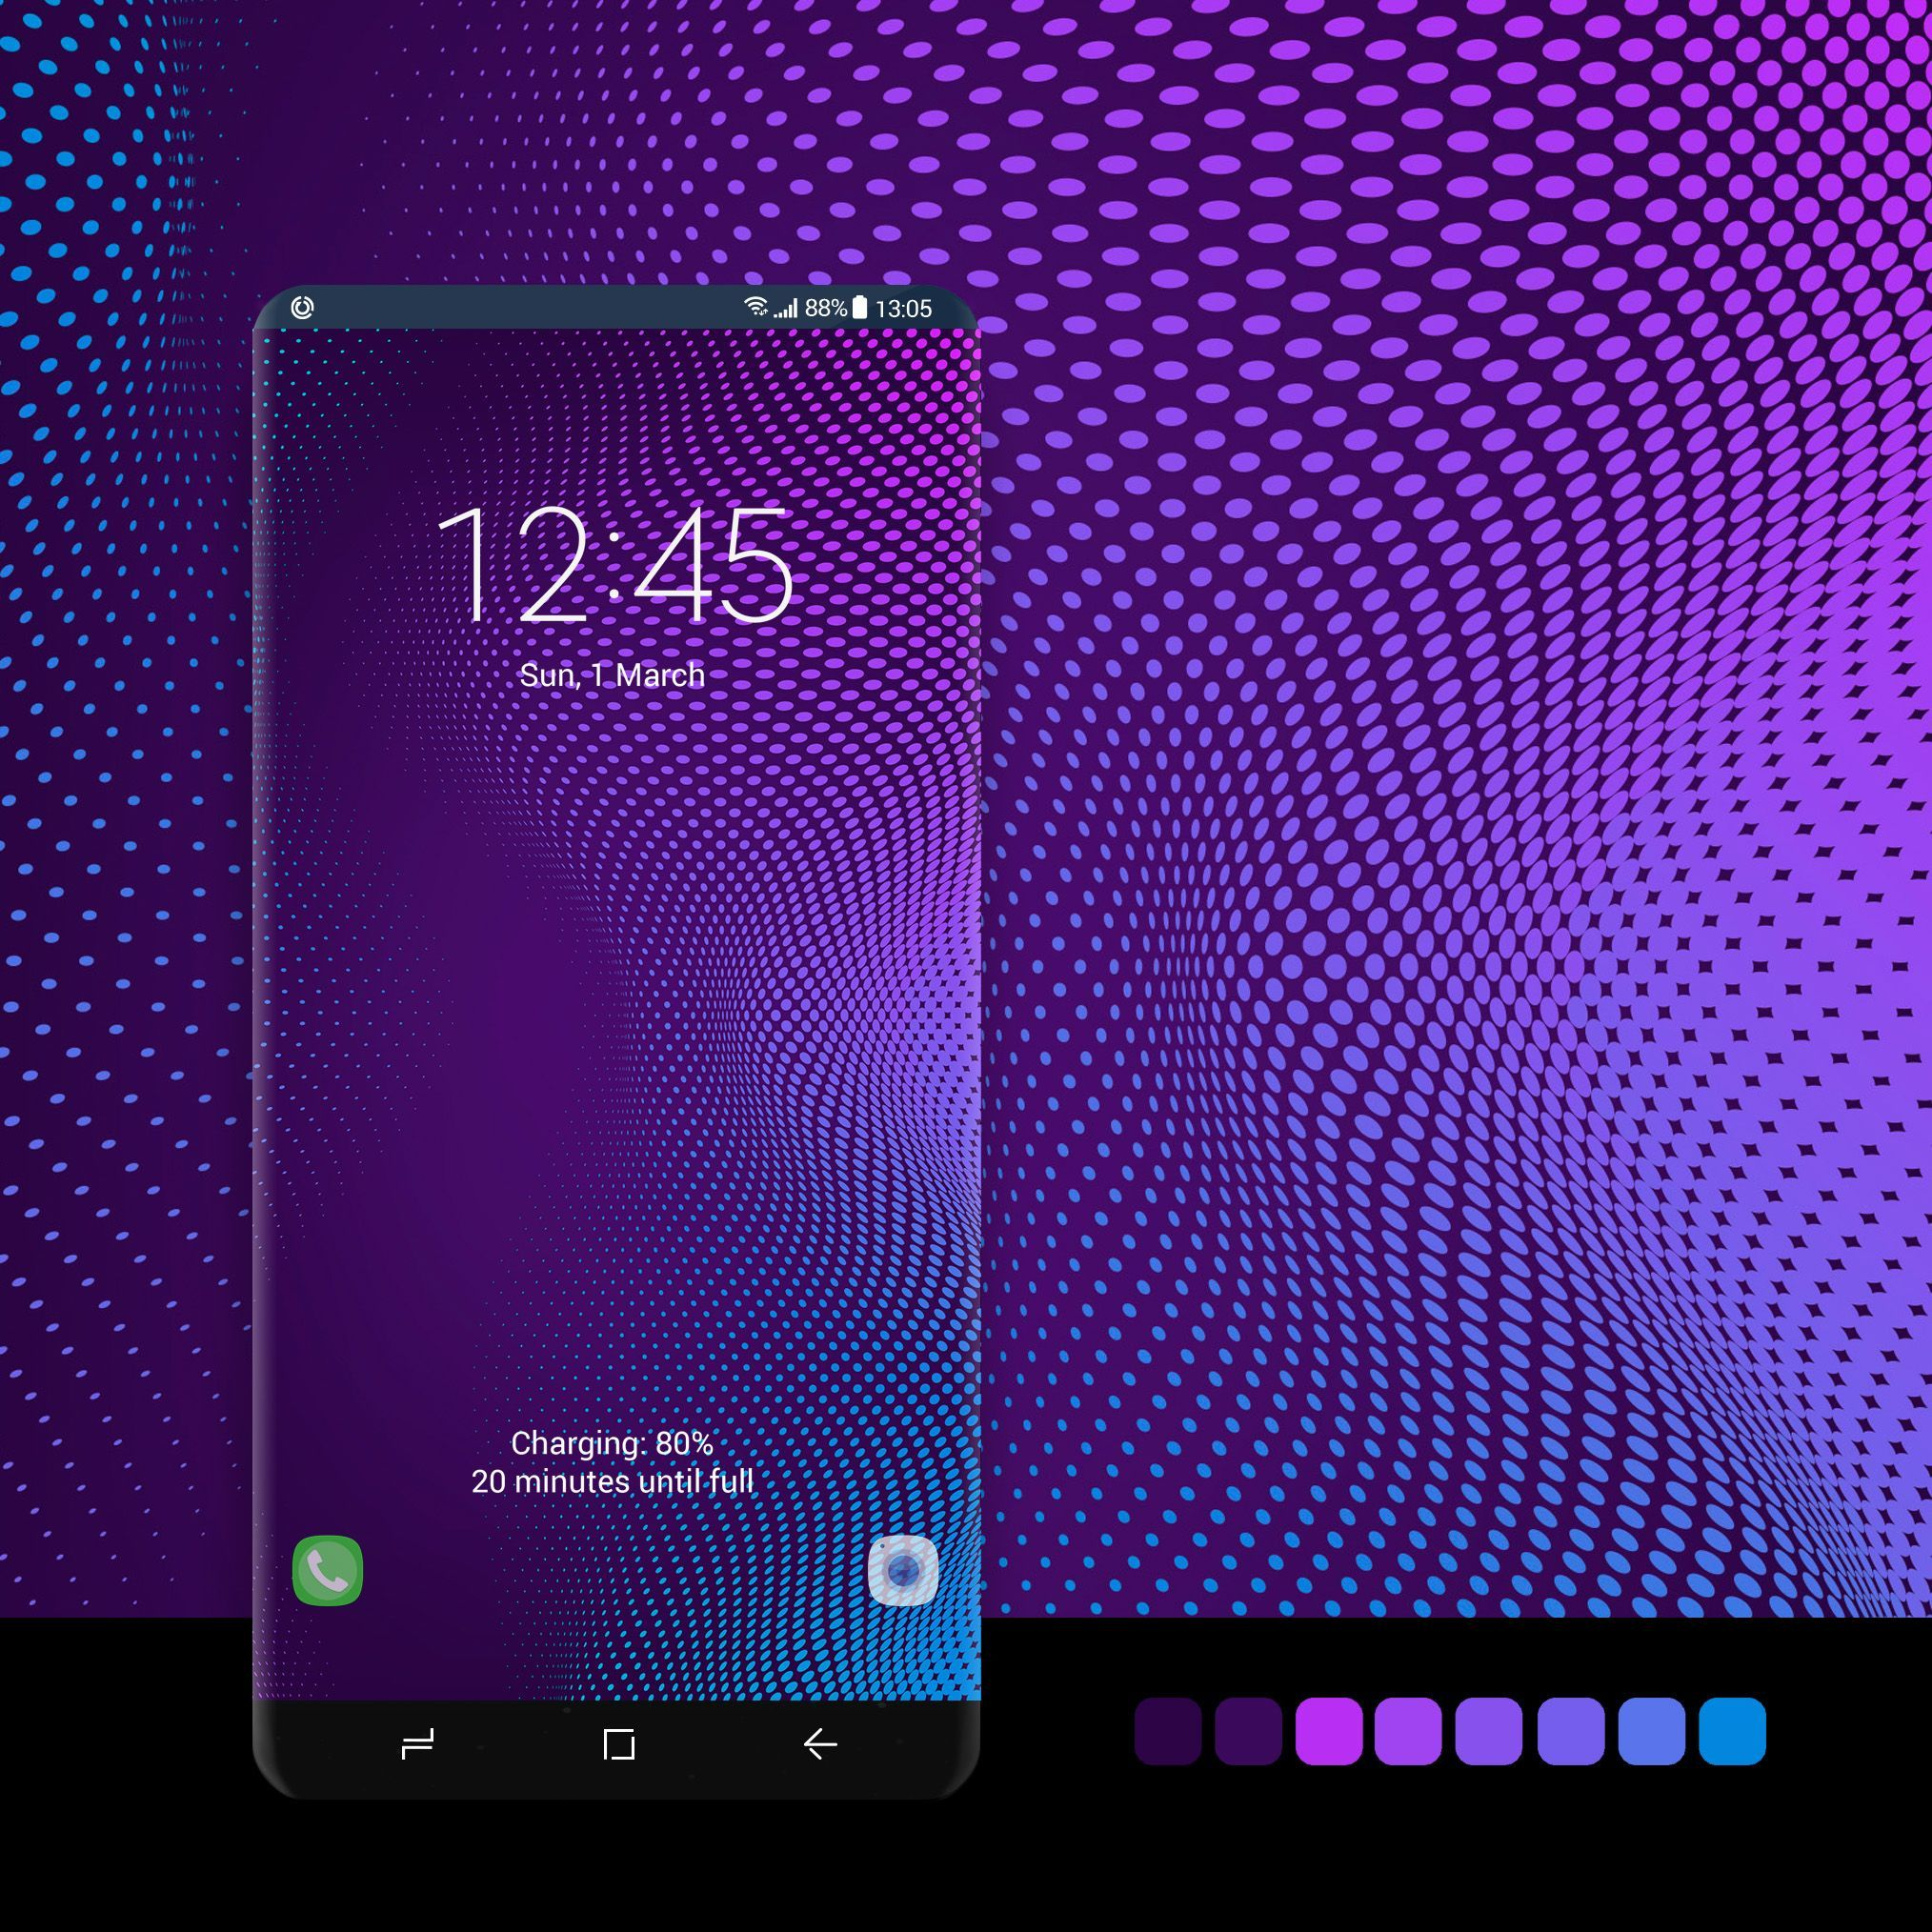 Purple Dotted In 2021 Samsung Galaxy Wallpaper Android Samsung Galaxy Wallpaper Galaxy